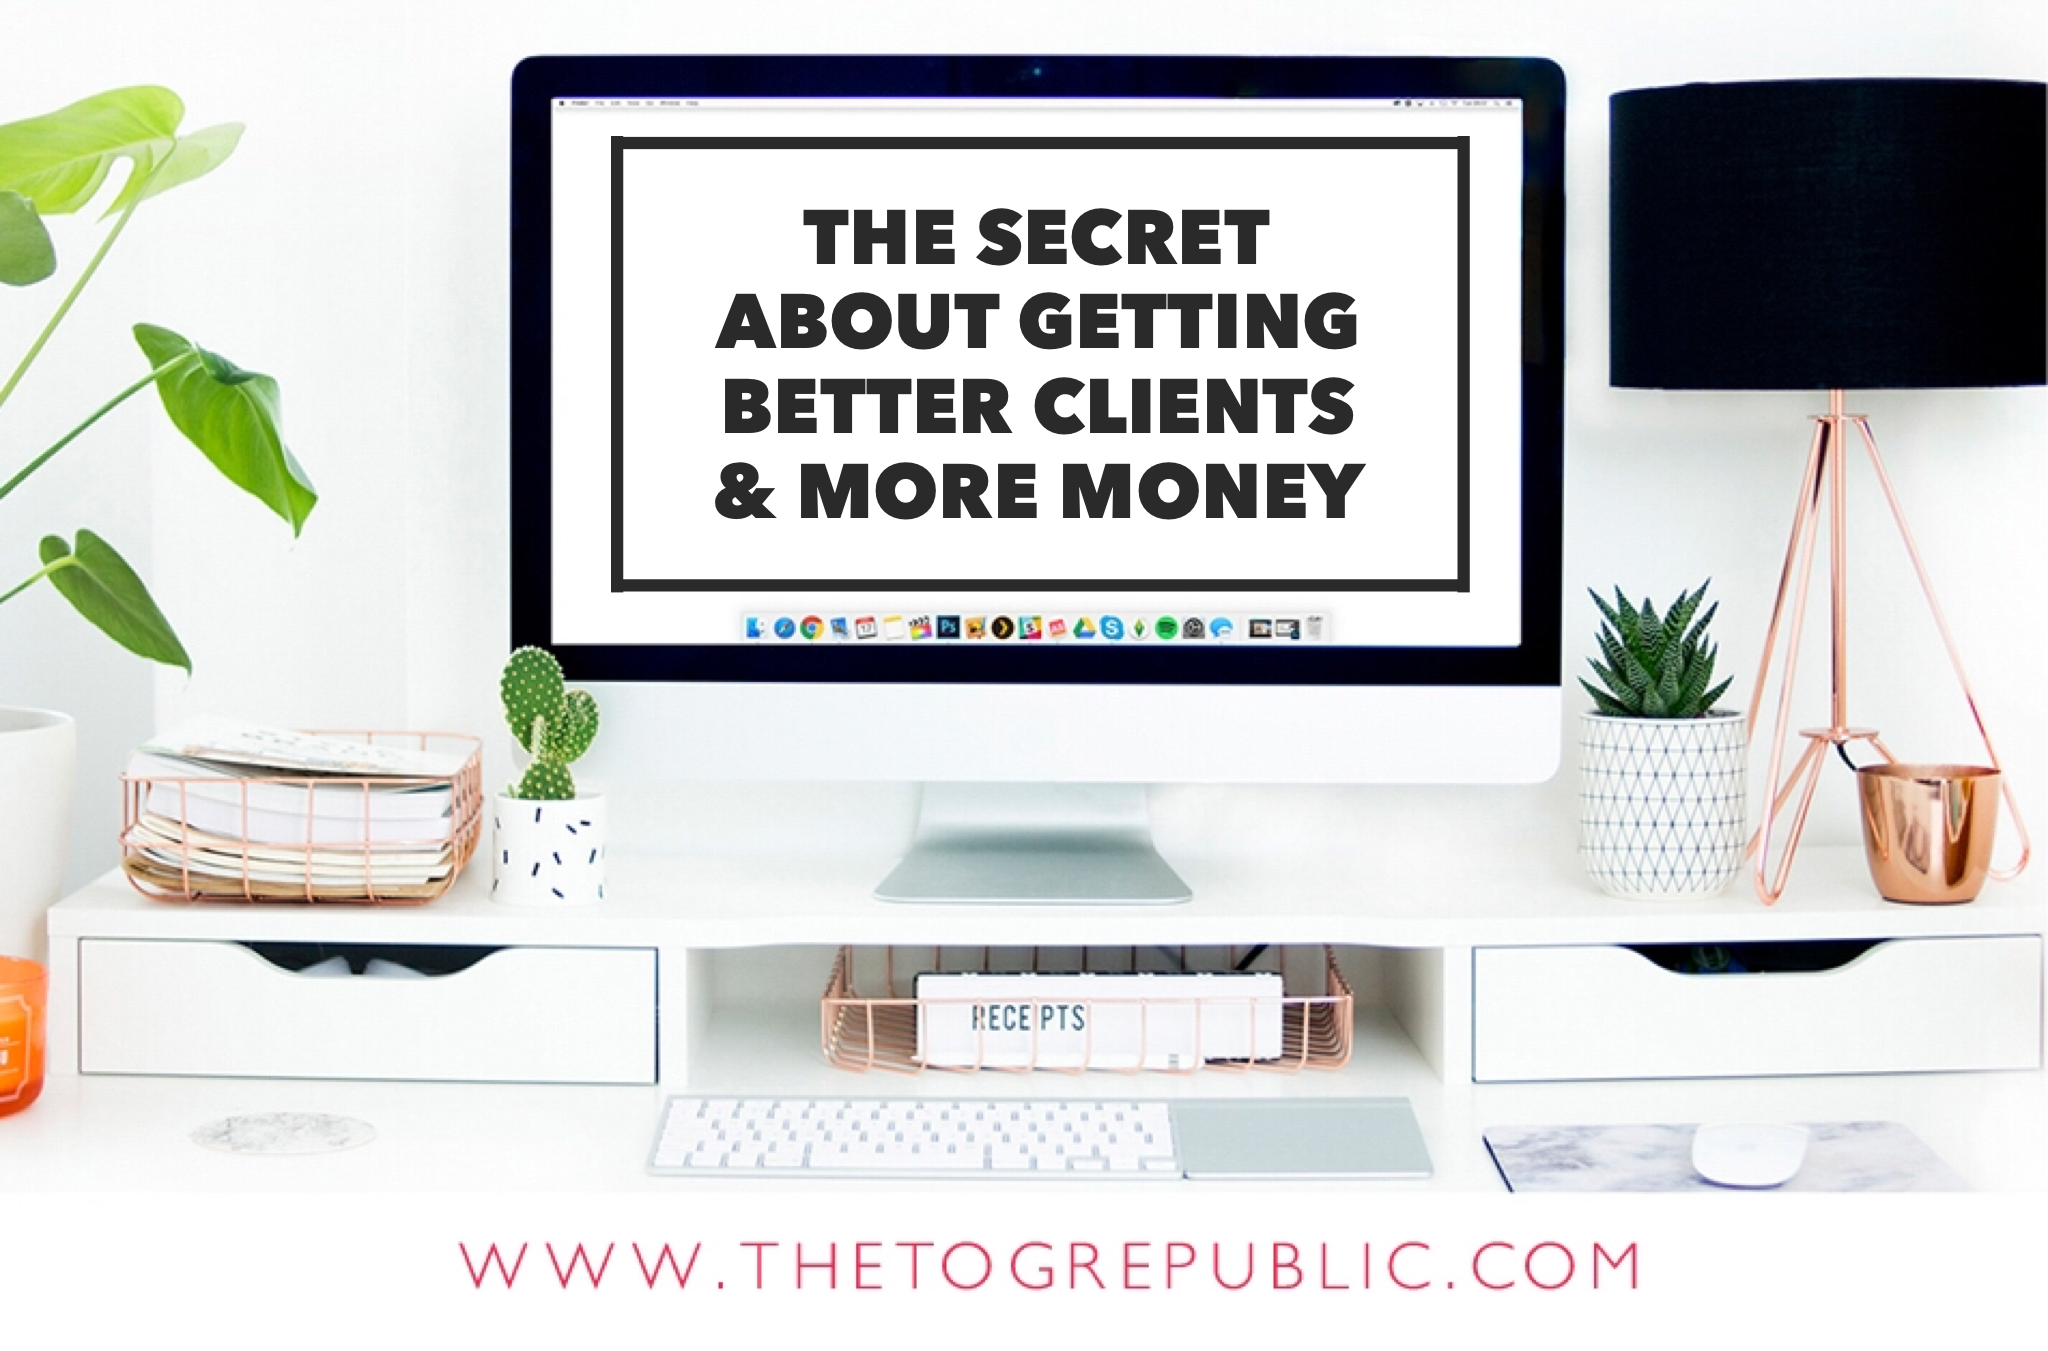 it is not a secret, we all want to make more money! We all want to be that successful photographer that has amazing clients and charges high prices, but how do we get there?